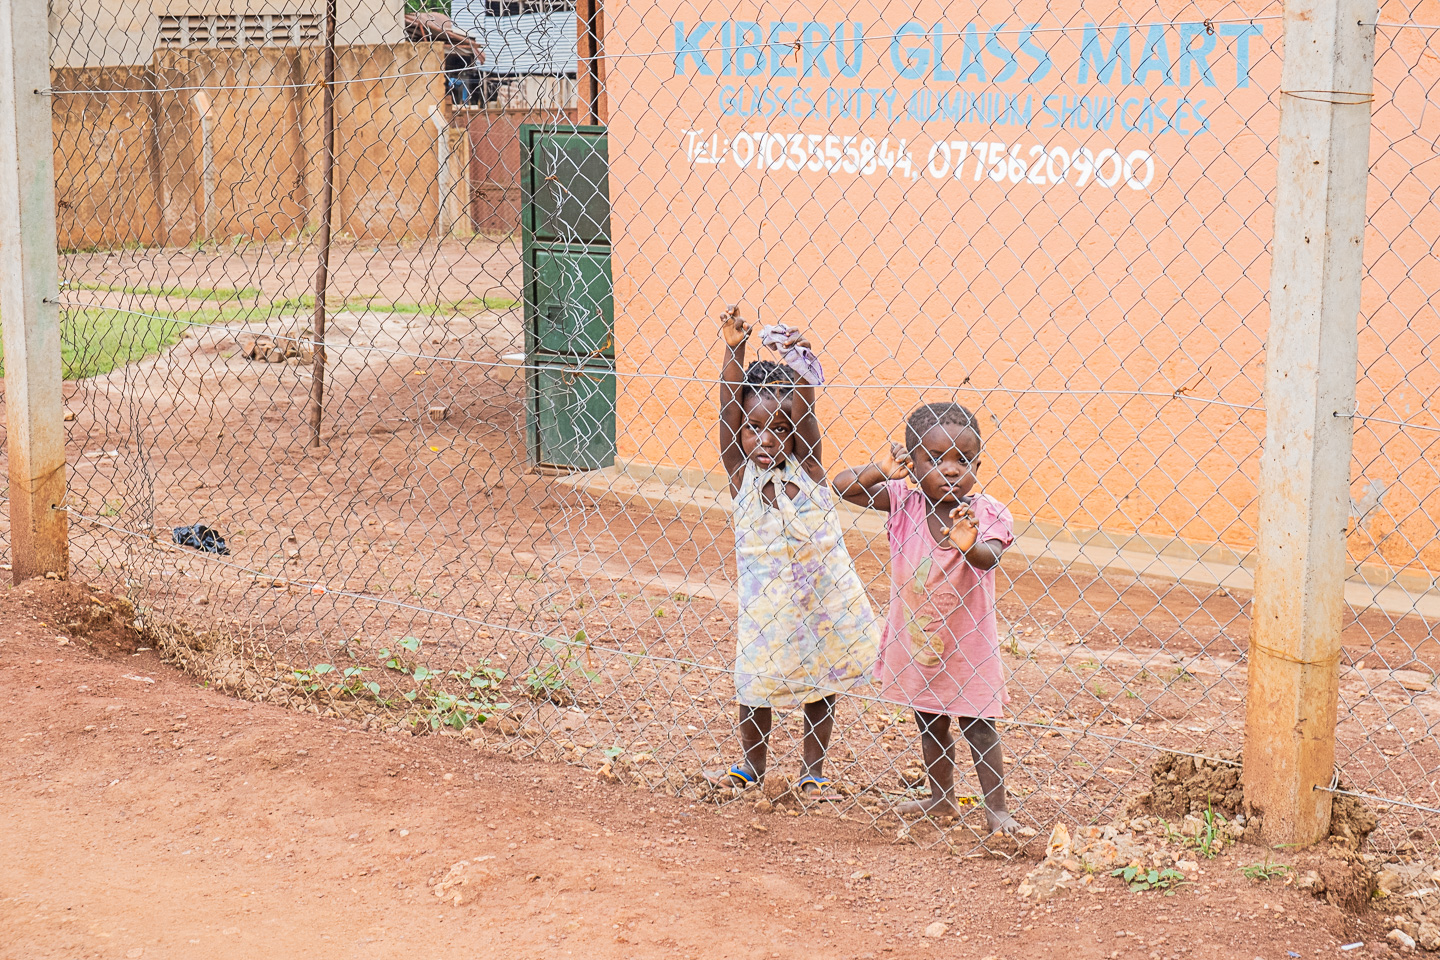 Two young girls in the slums of Kampala, Uganda 2019 @Amina Mohamed Photography